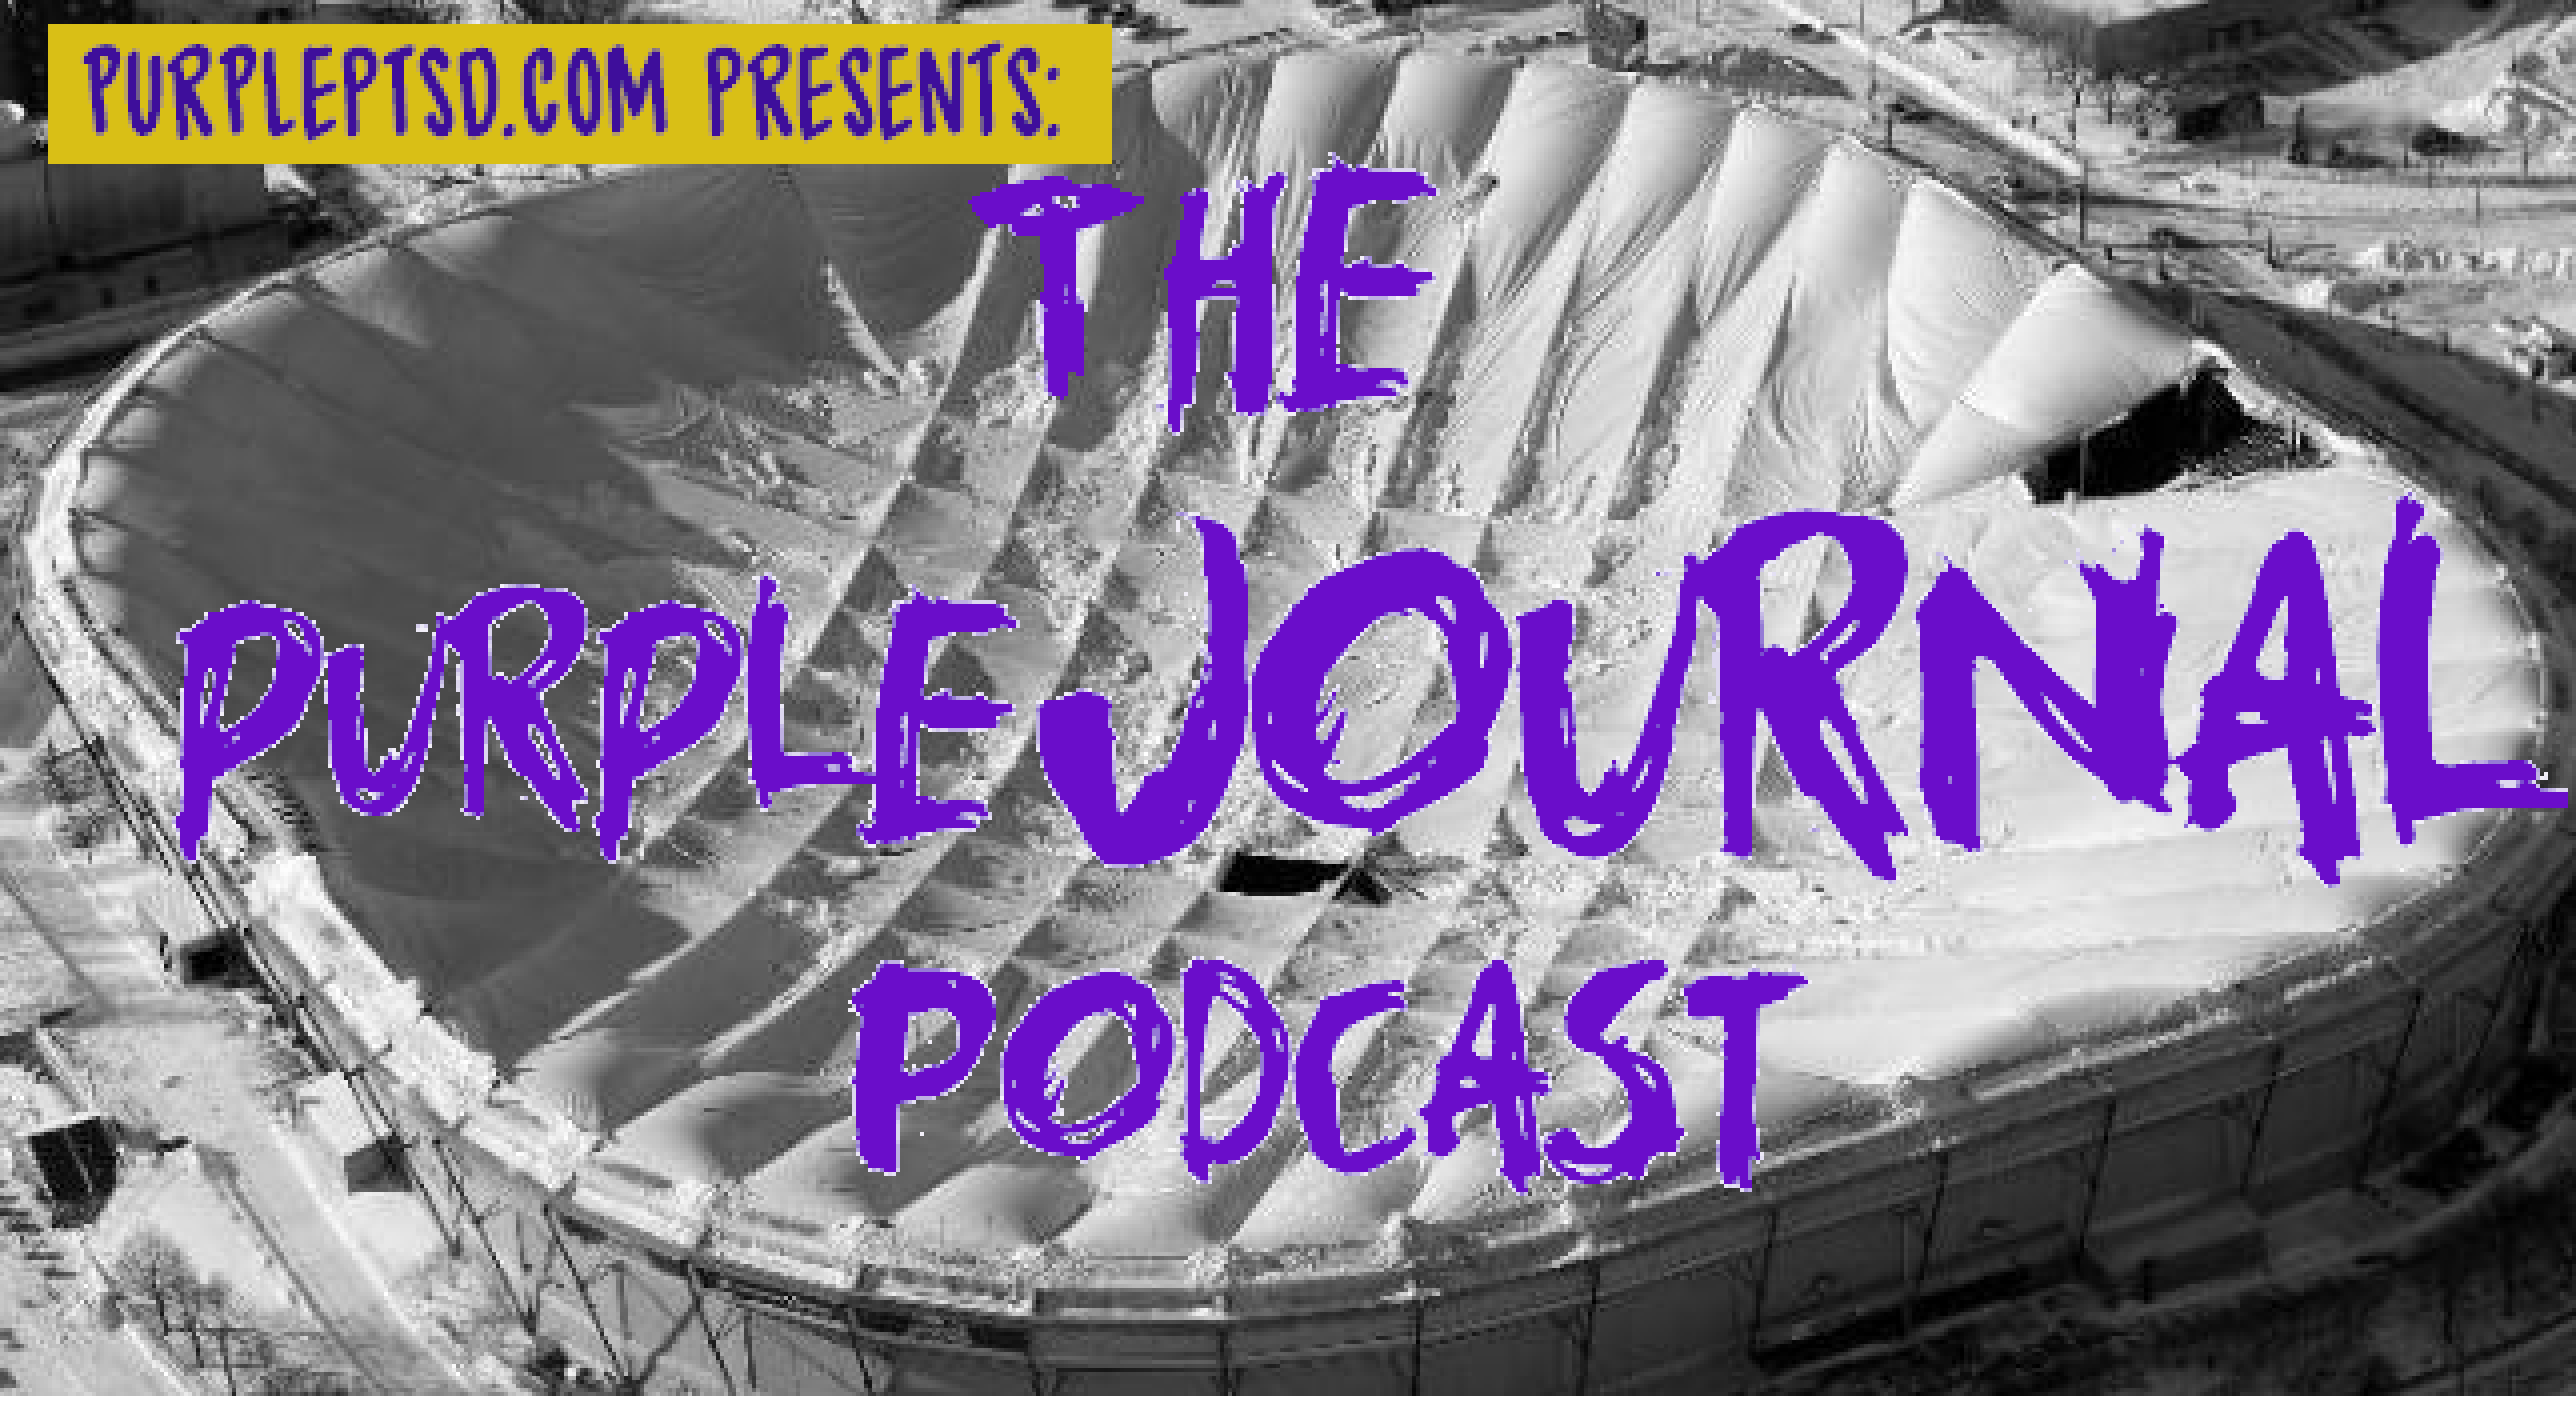 The purpleJOURNAL Podcast